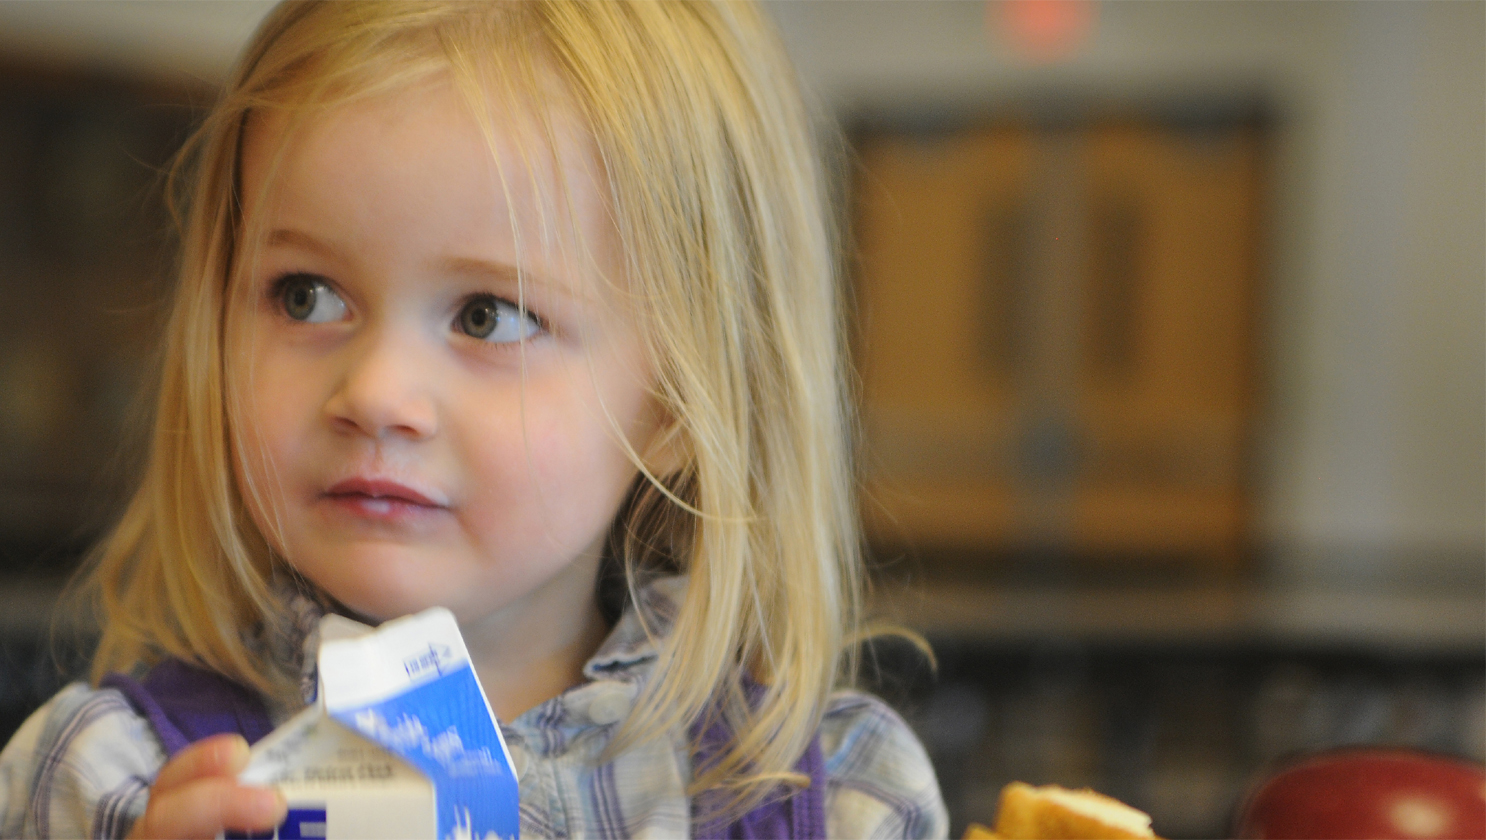 Too many children like this one, go hungry because of poverty or worse, neglect. The Food Bank of Central and Northeast Mo. is asking for your help in feeding them.